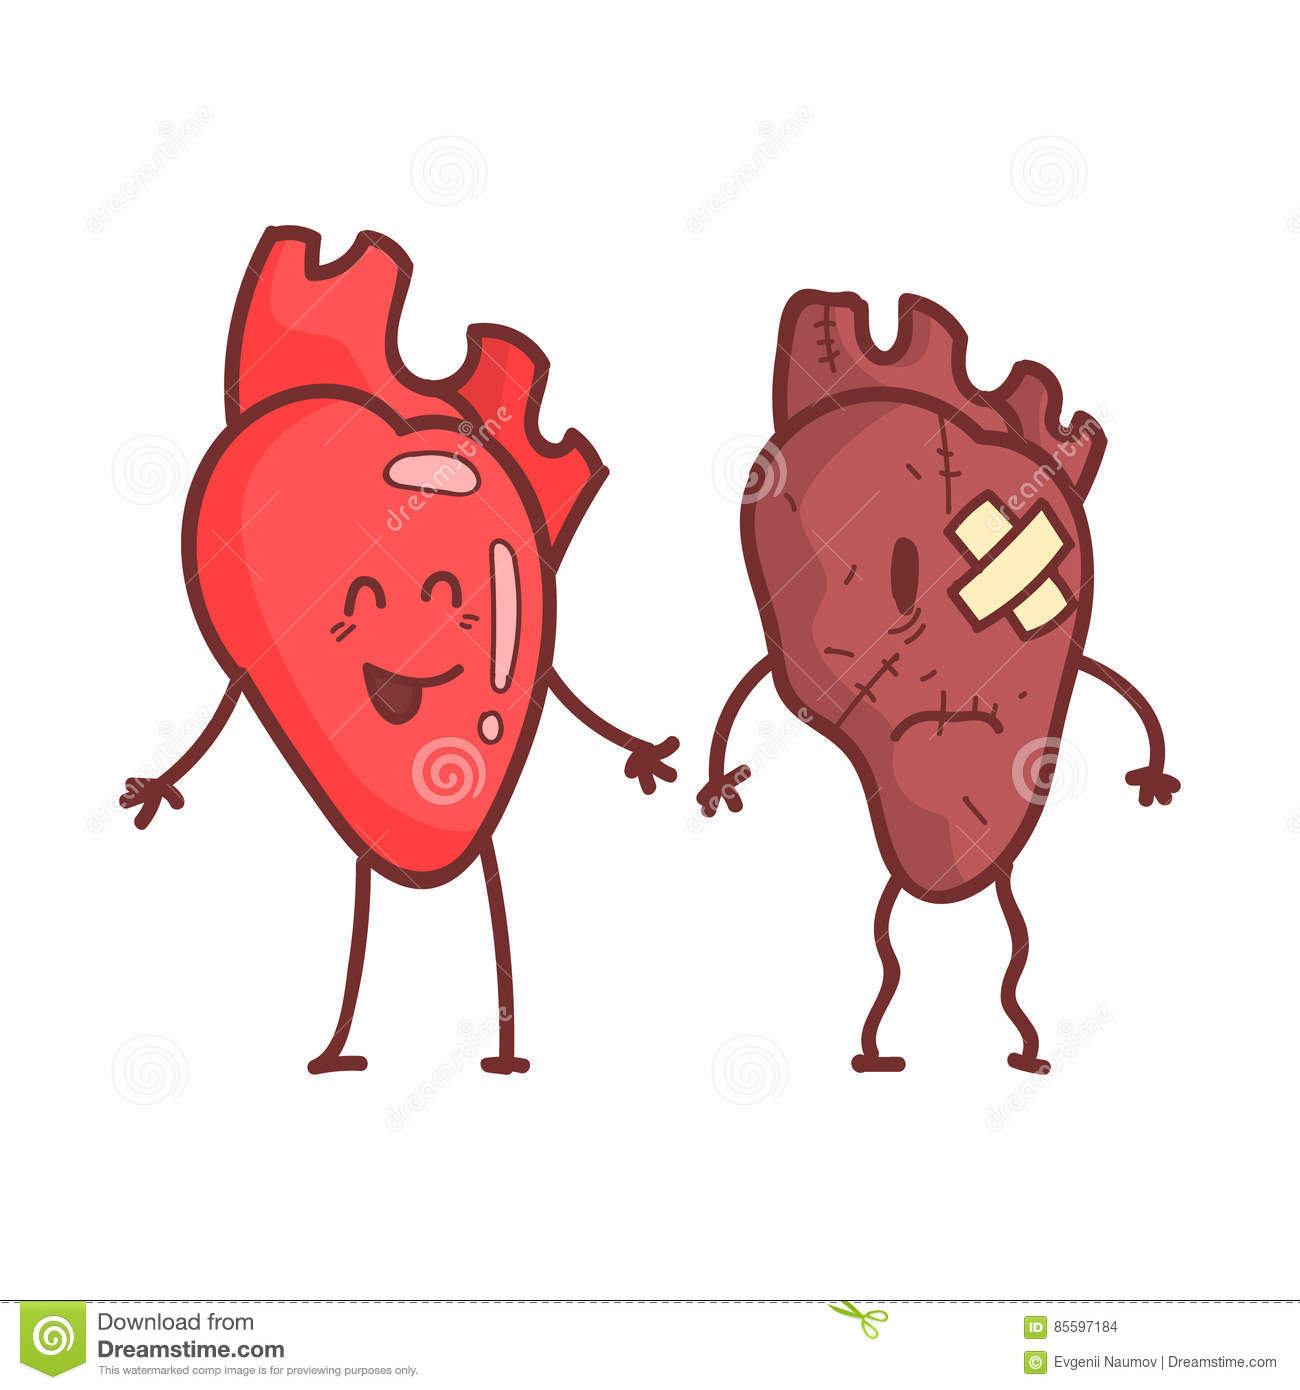 heart human internal organ healthy vs unhealthy medical